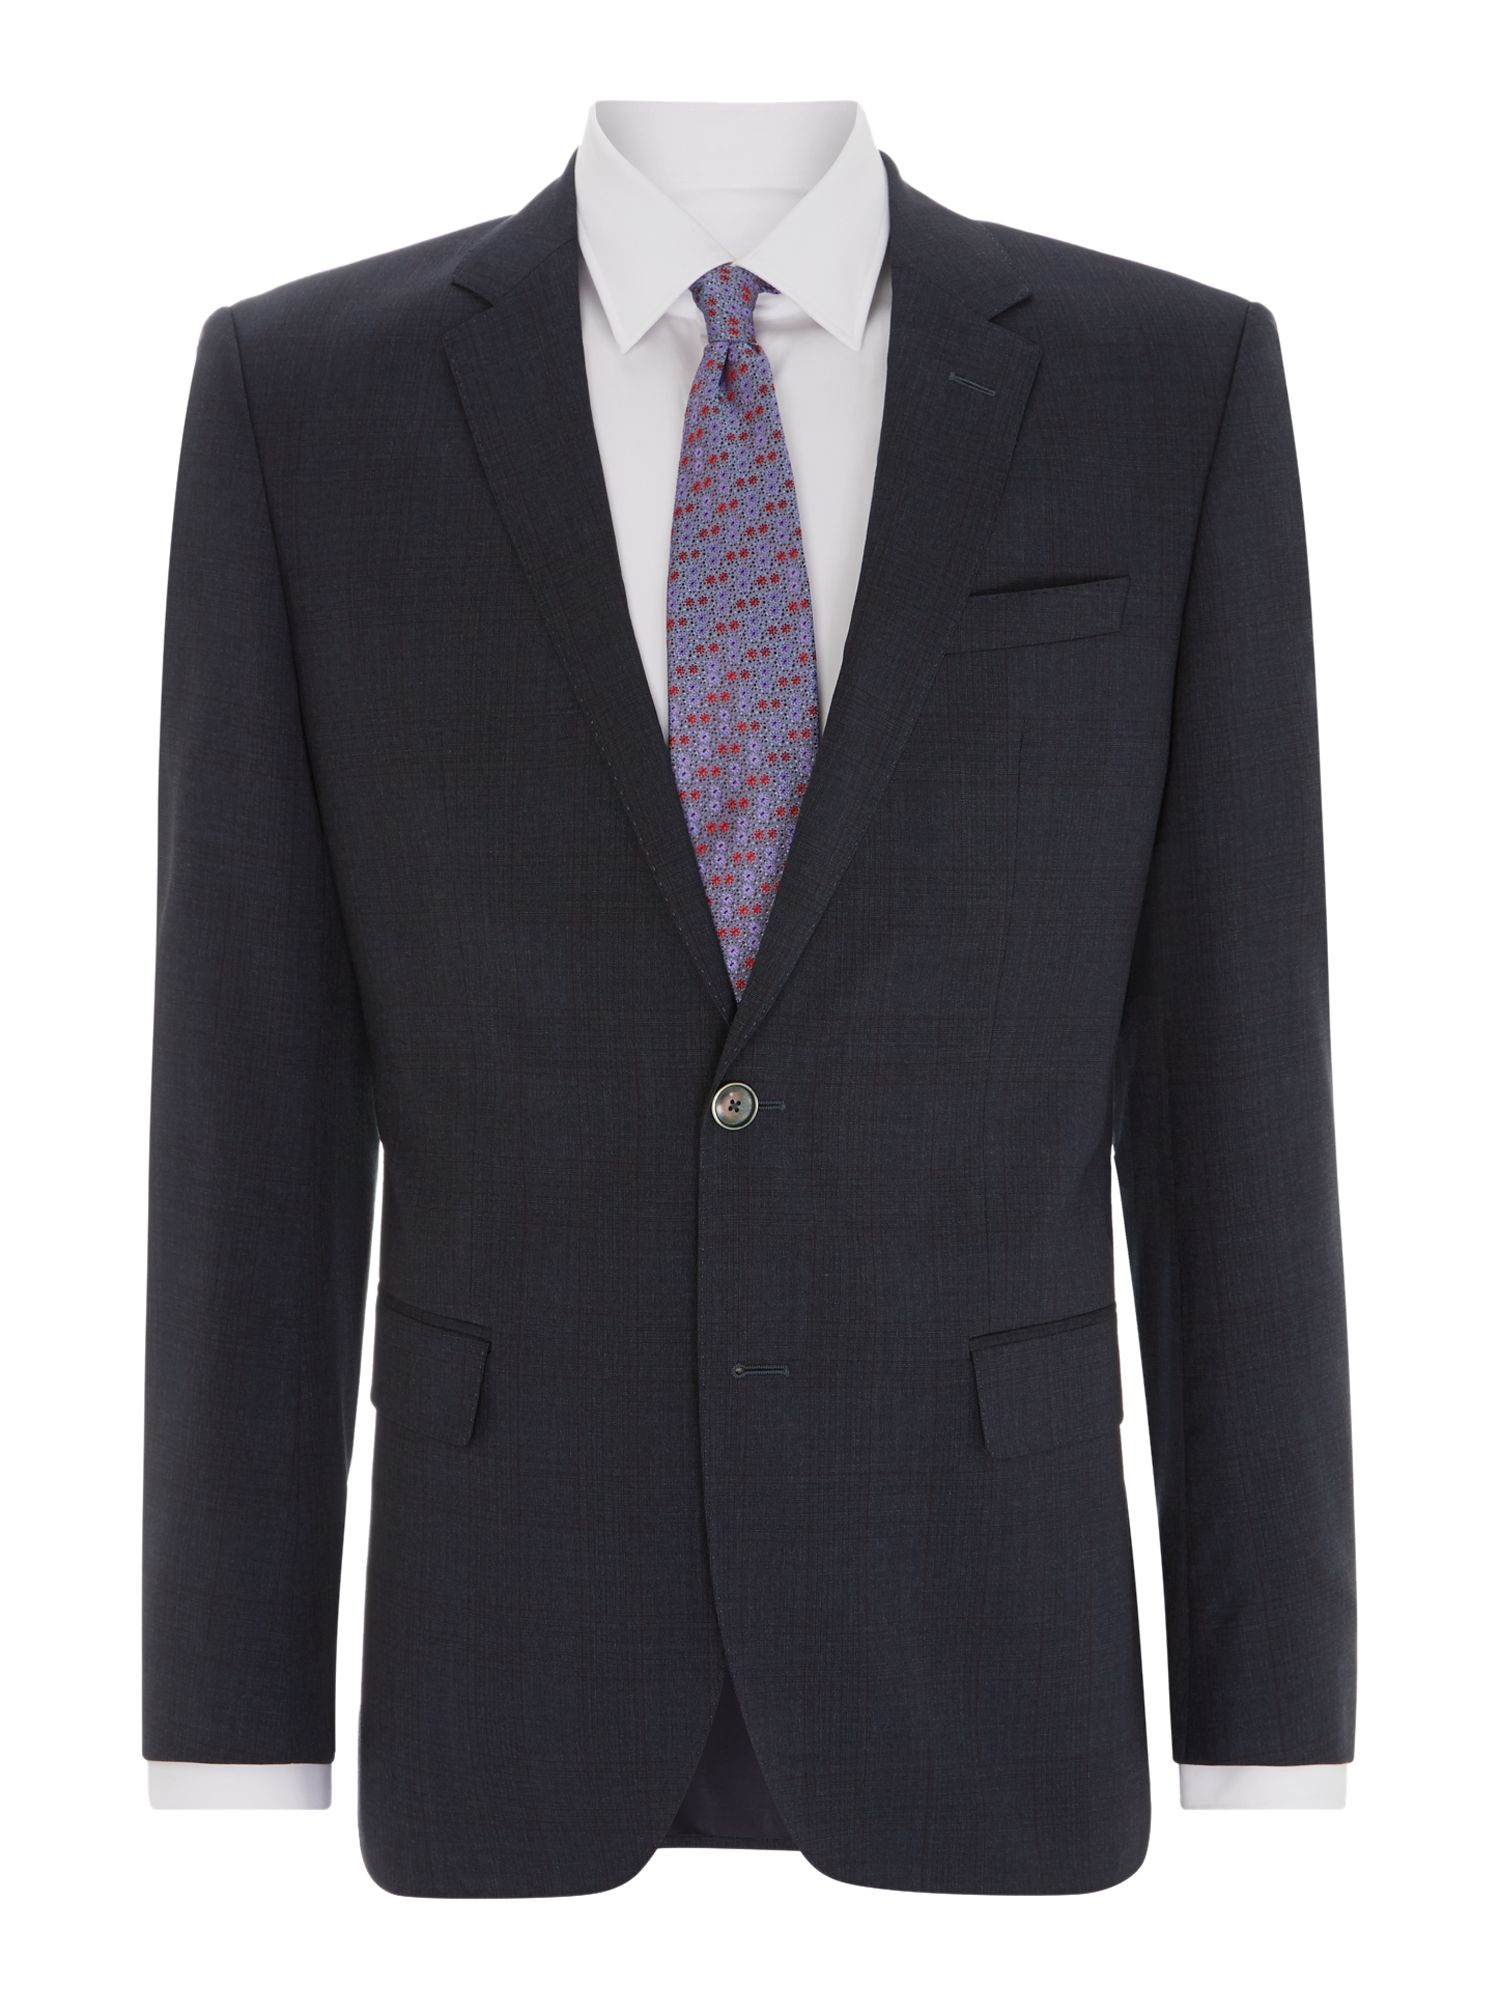 Hutson Gander slim fit burgundy check suit